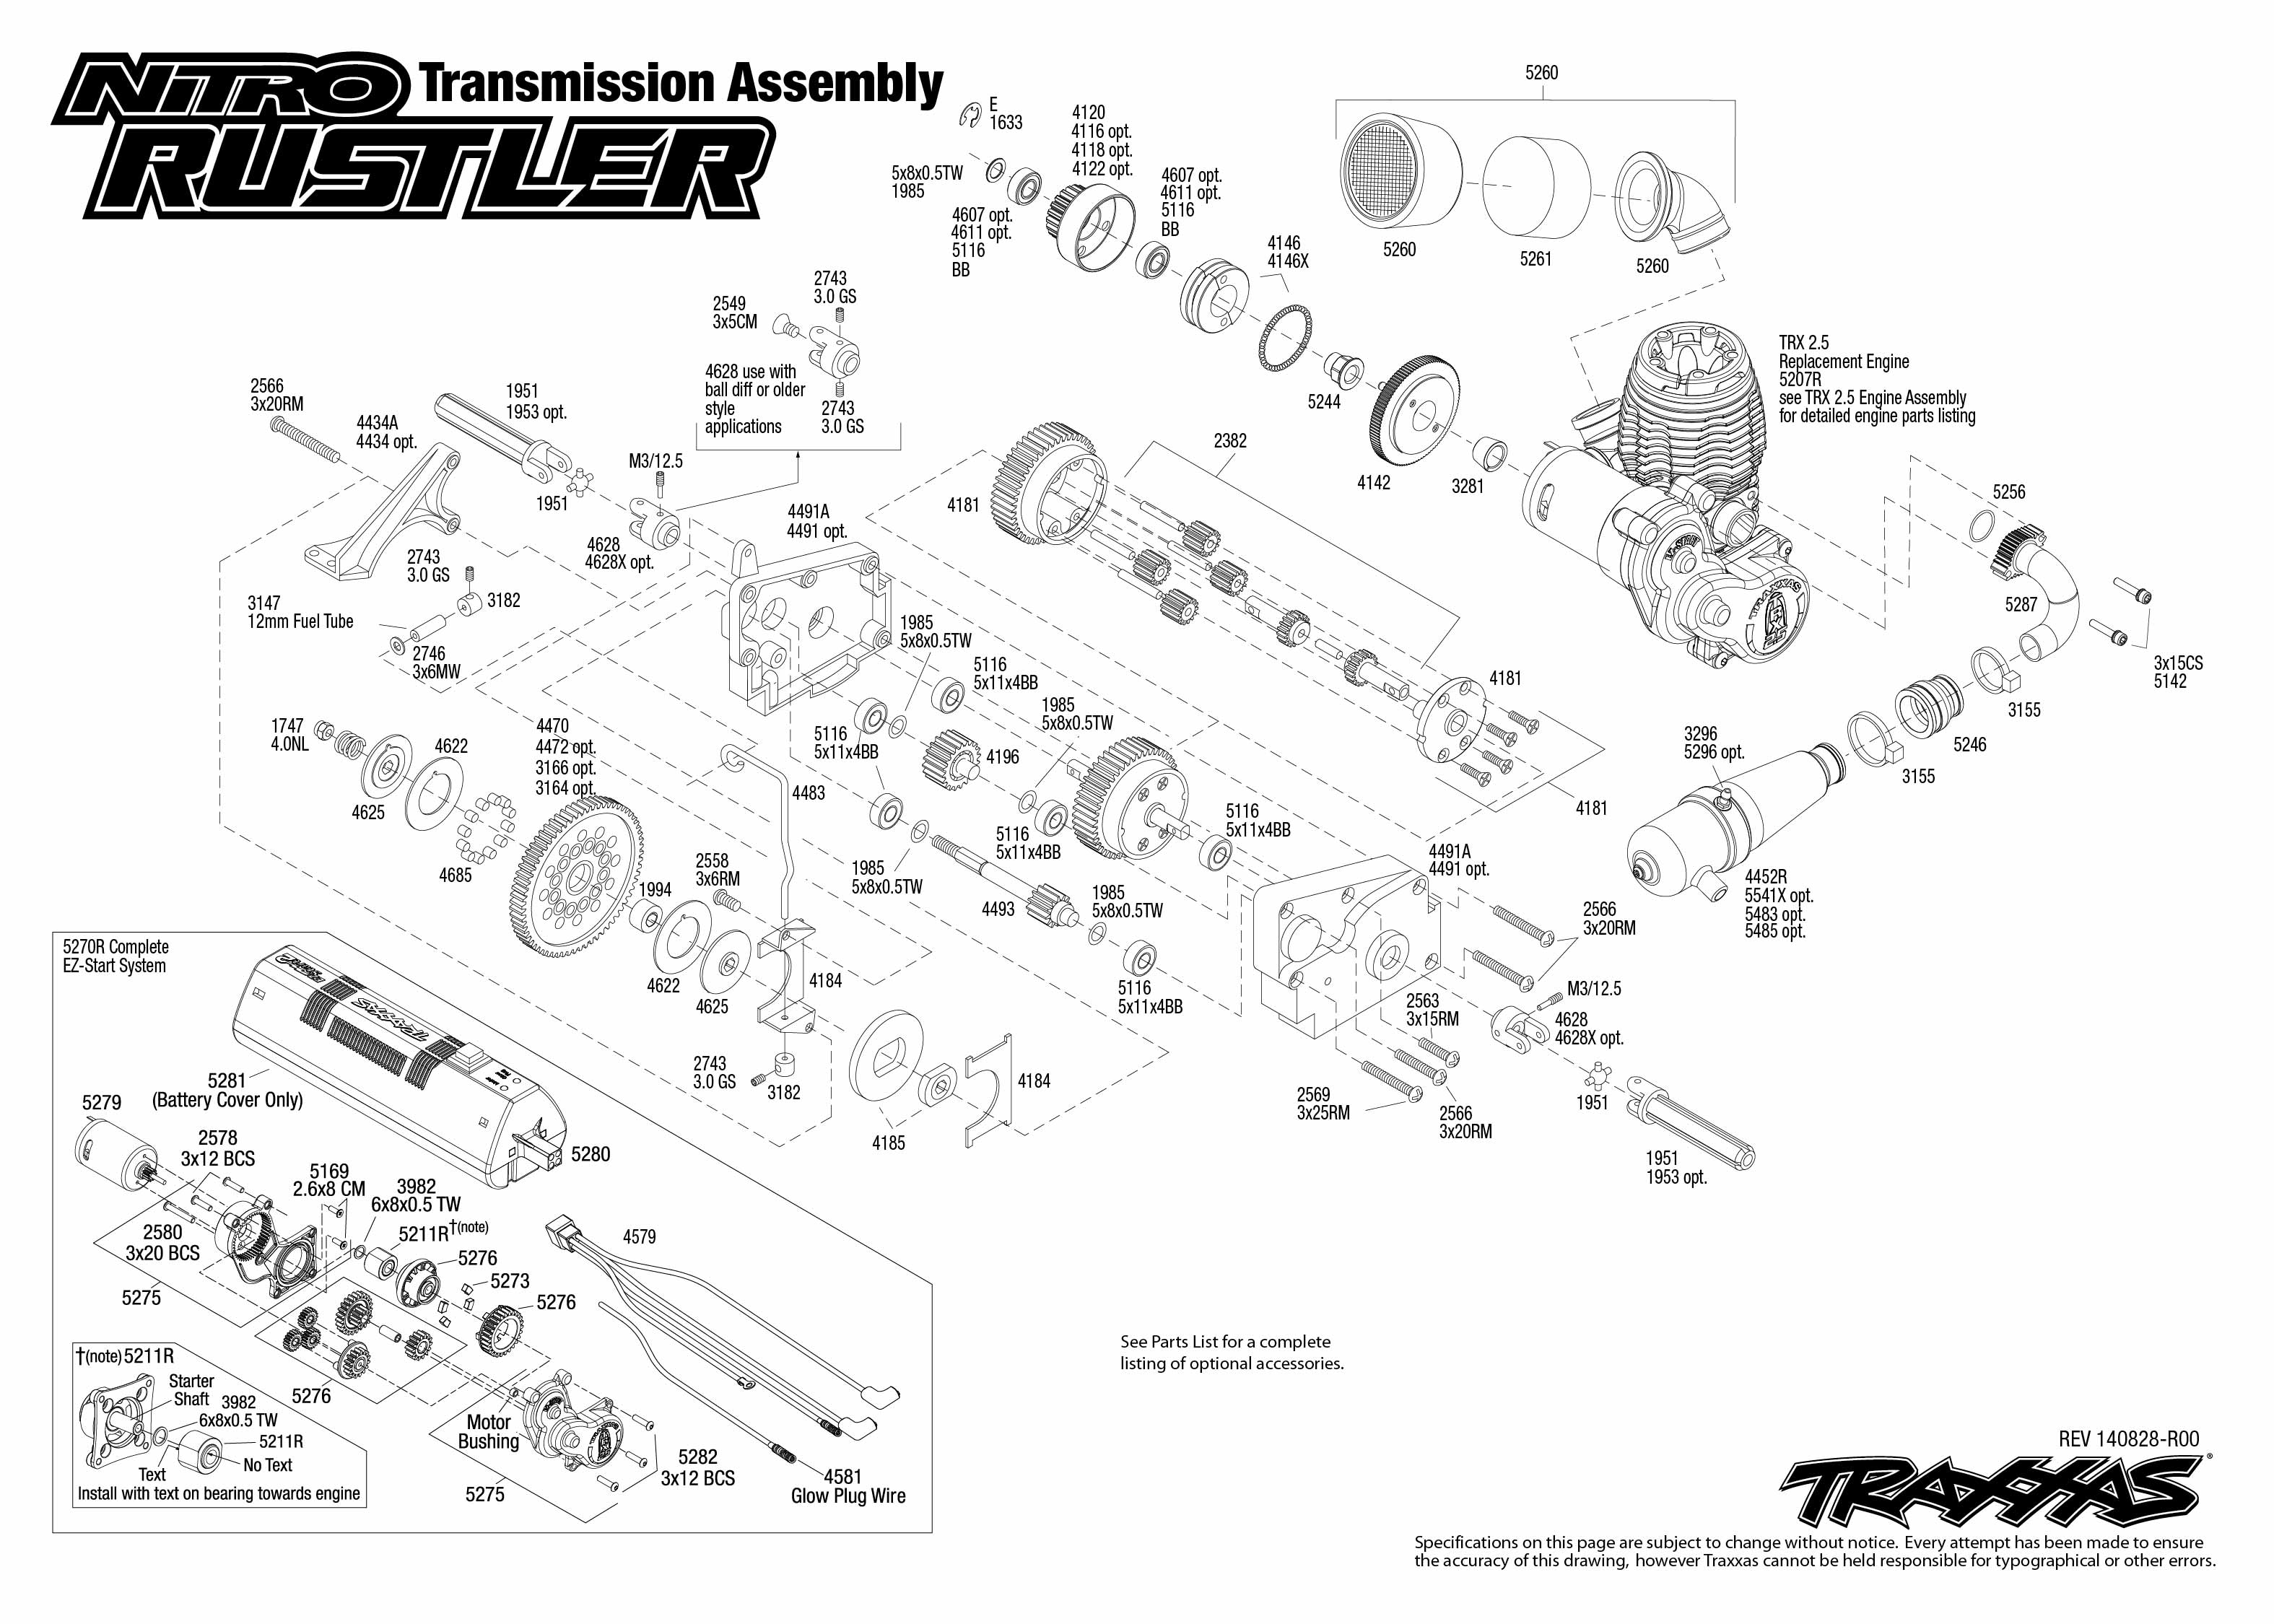 Nitro Rustler (44094-1) Transmission Assembly Exploded